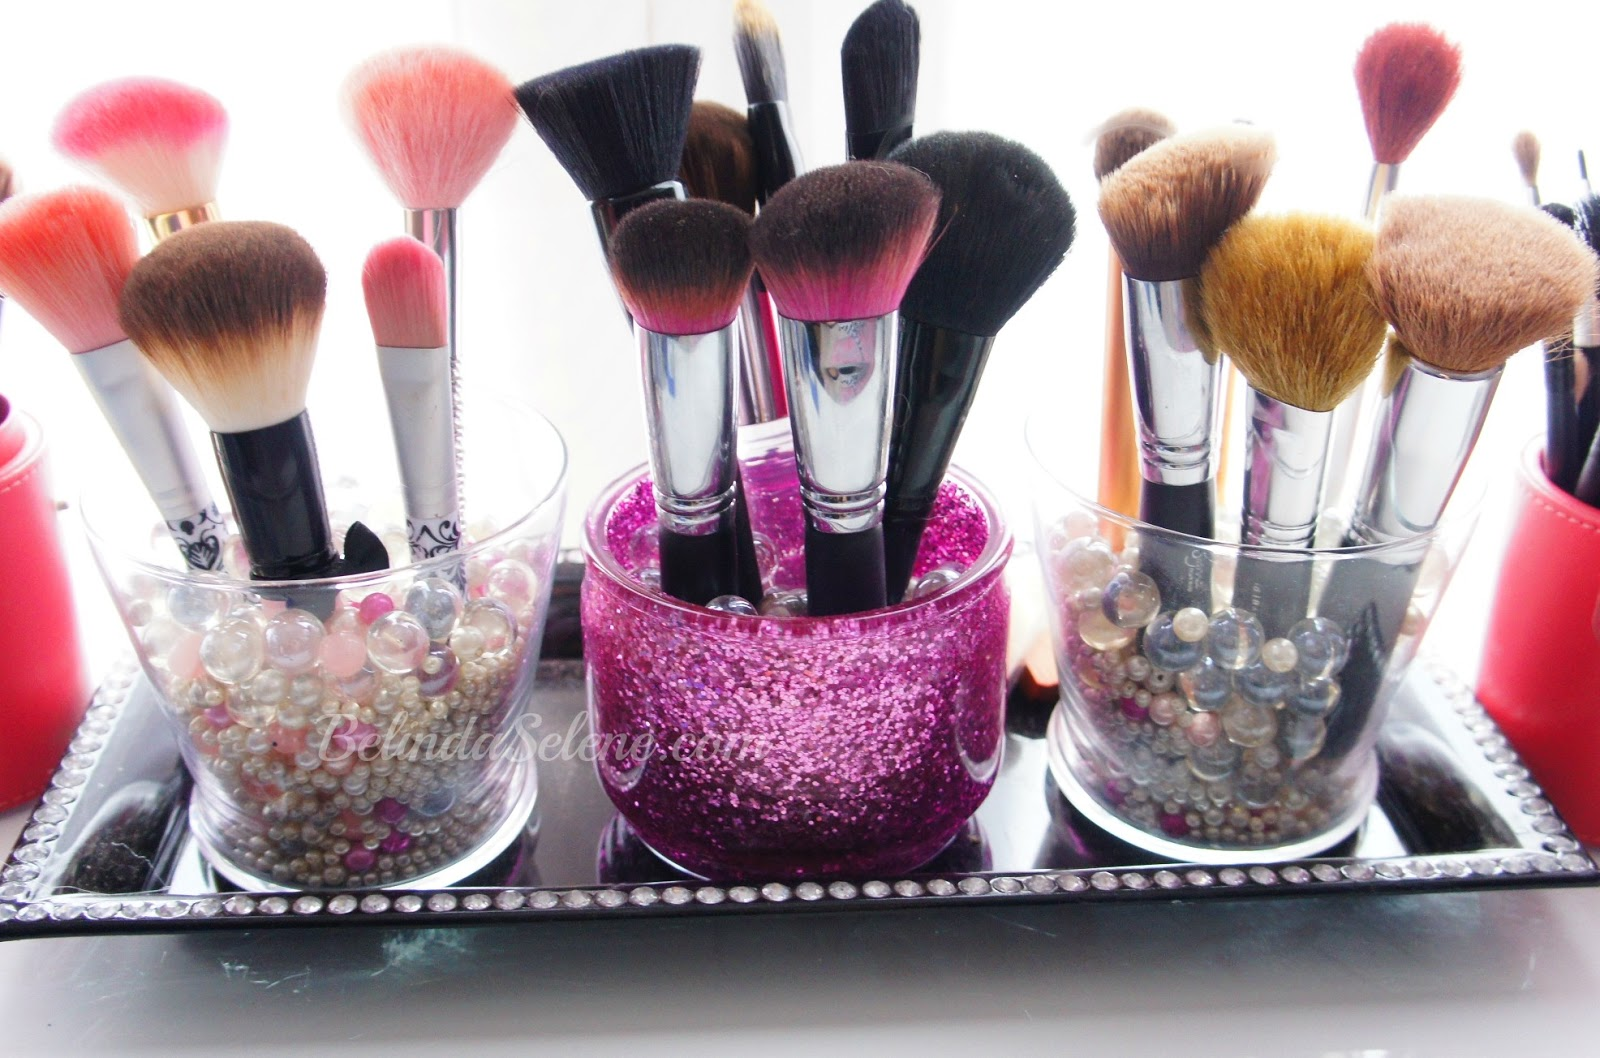 BelindaSelene: DIY Glitter Makeup Brush Holder